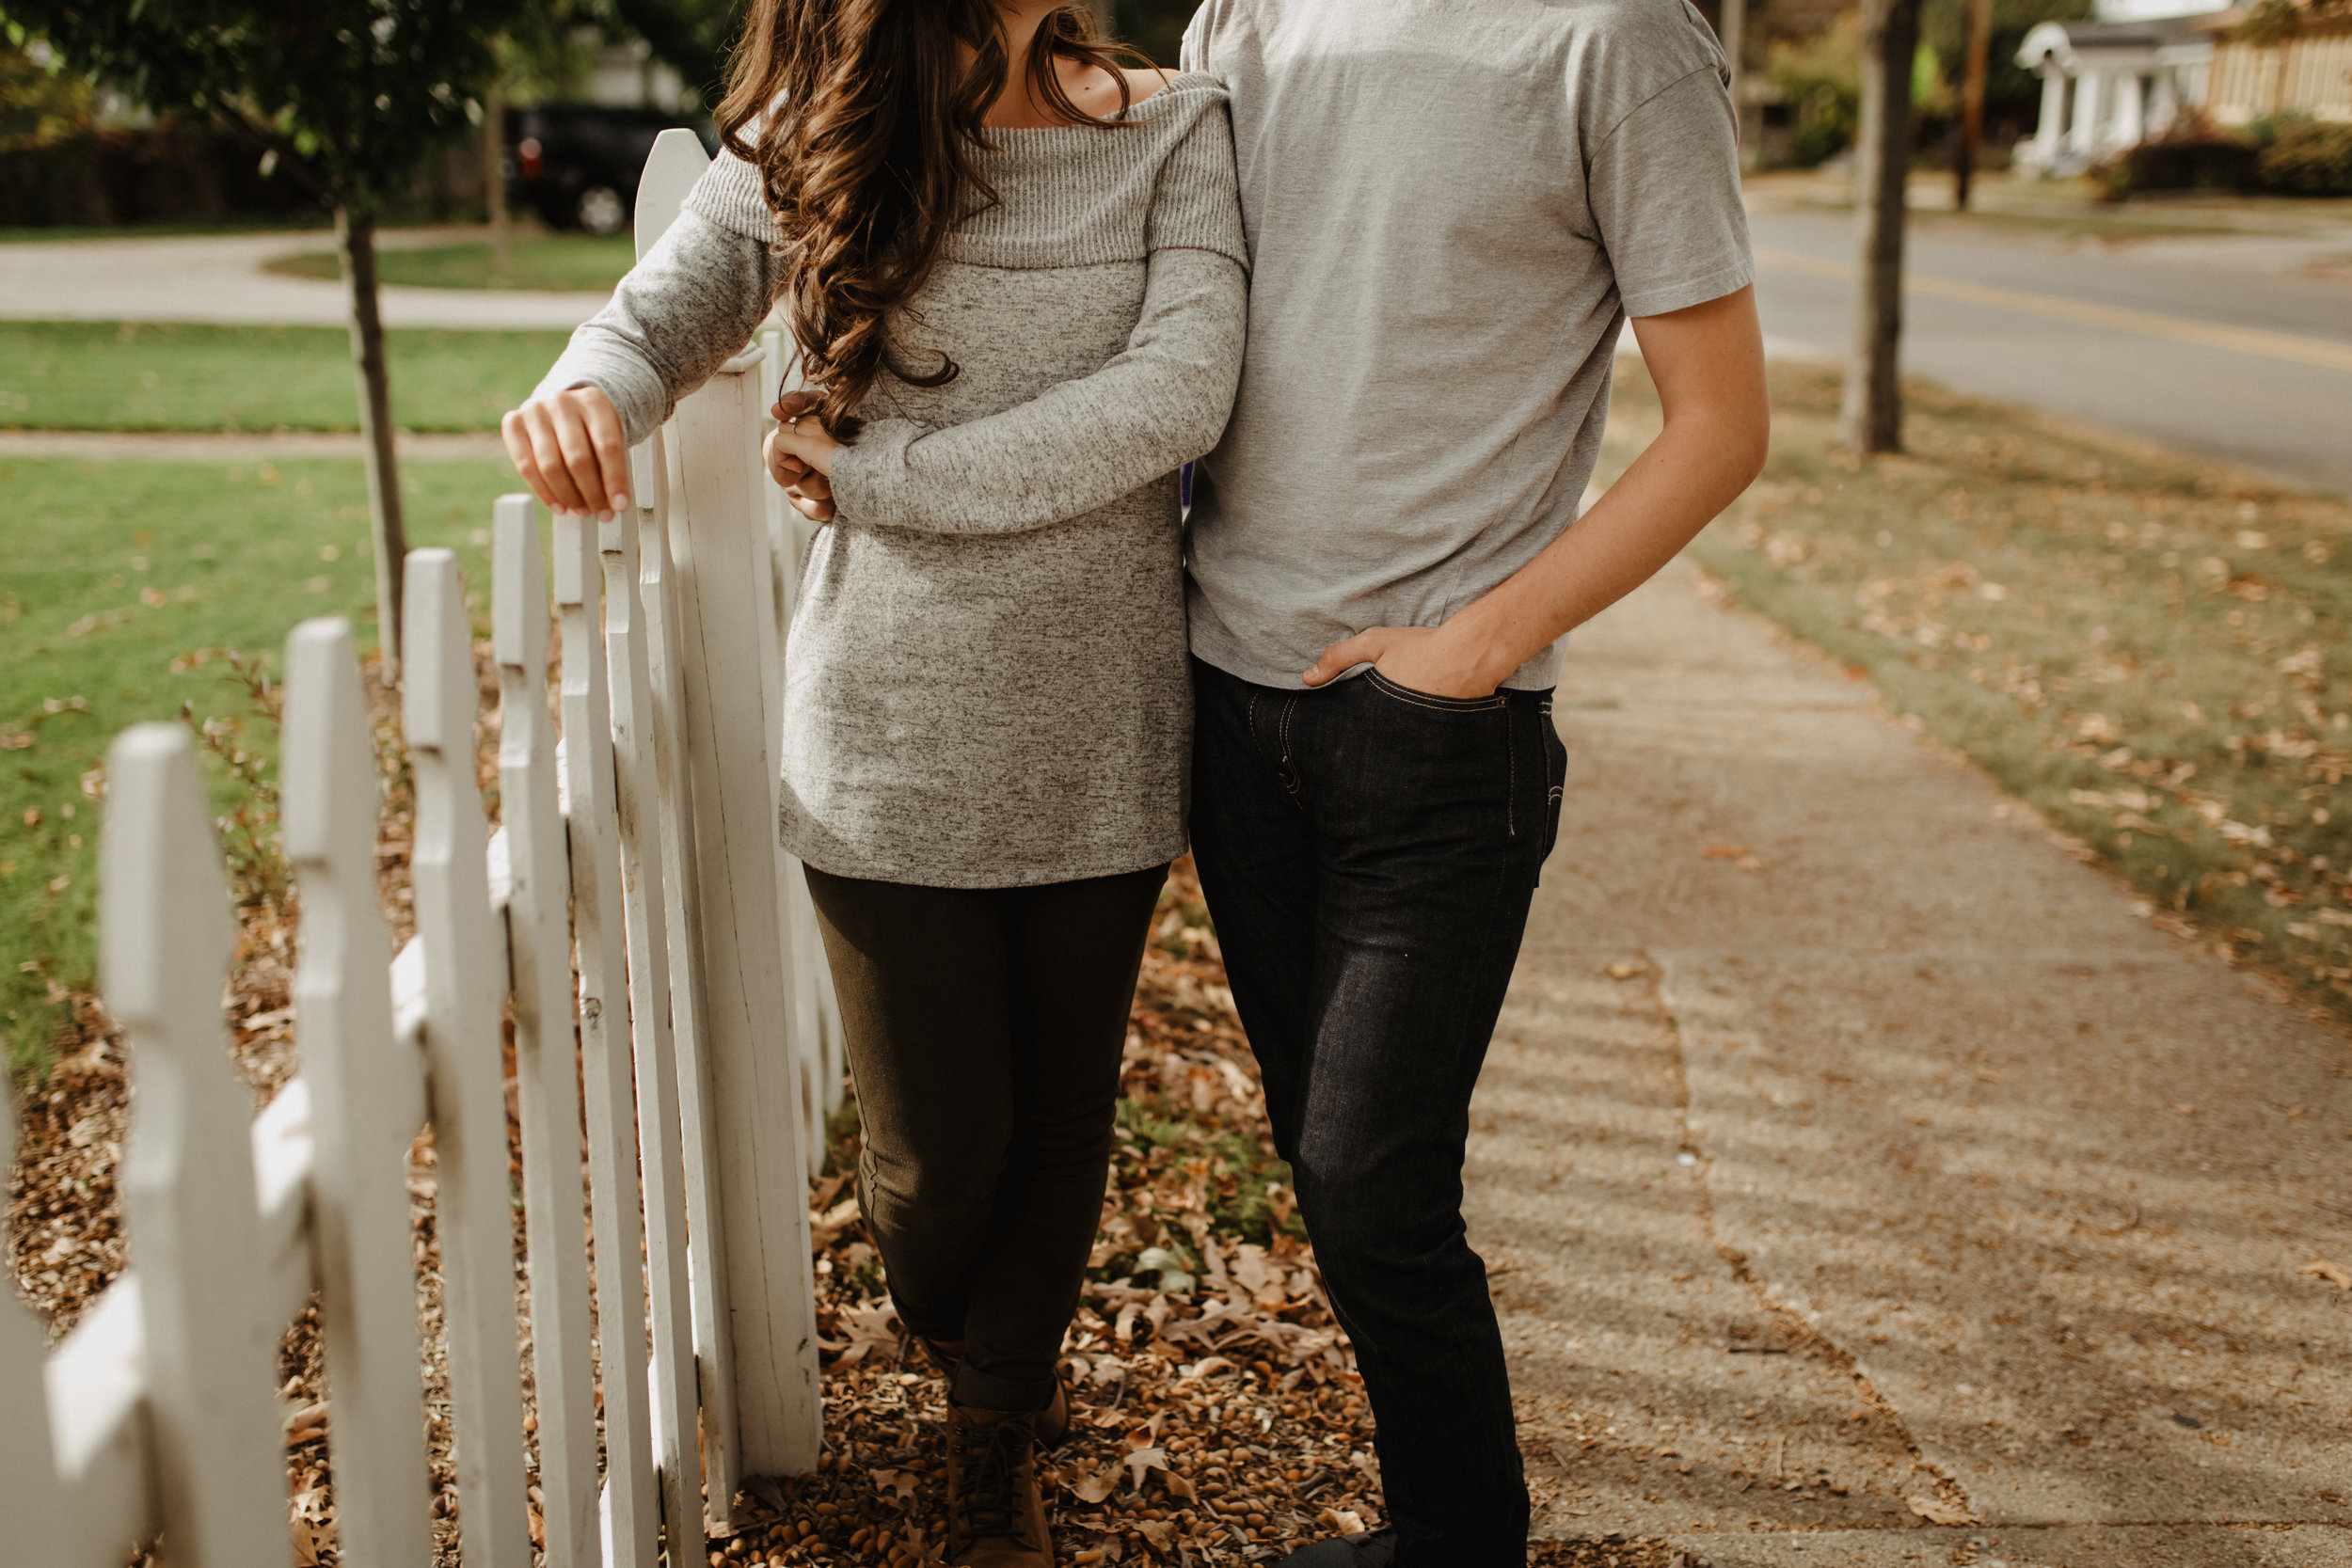 Claire-Rex-Pickar-Engagement-Photography-Collection-35.jpg